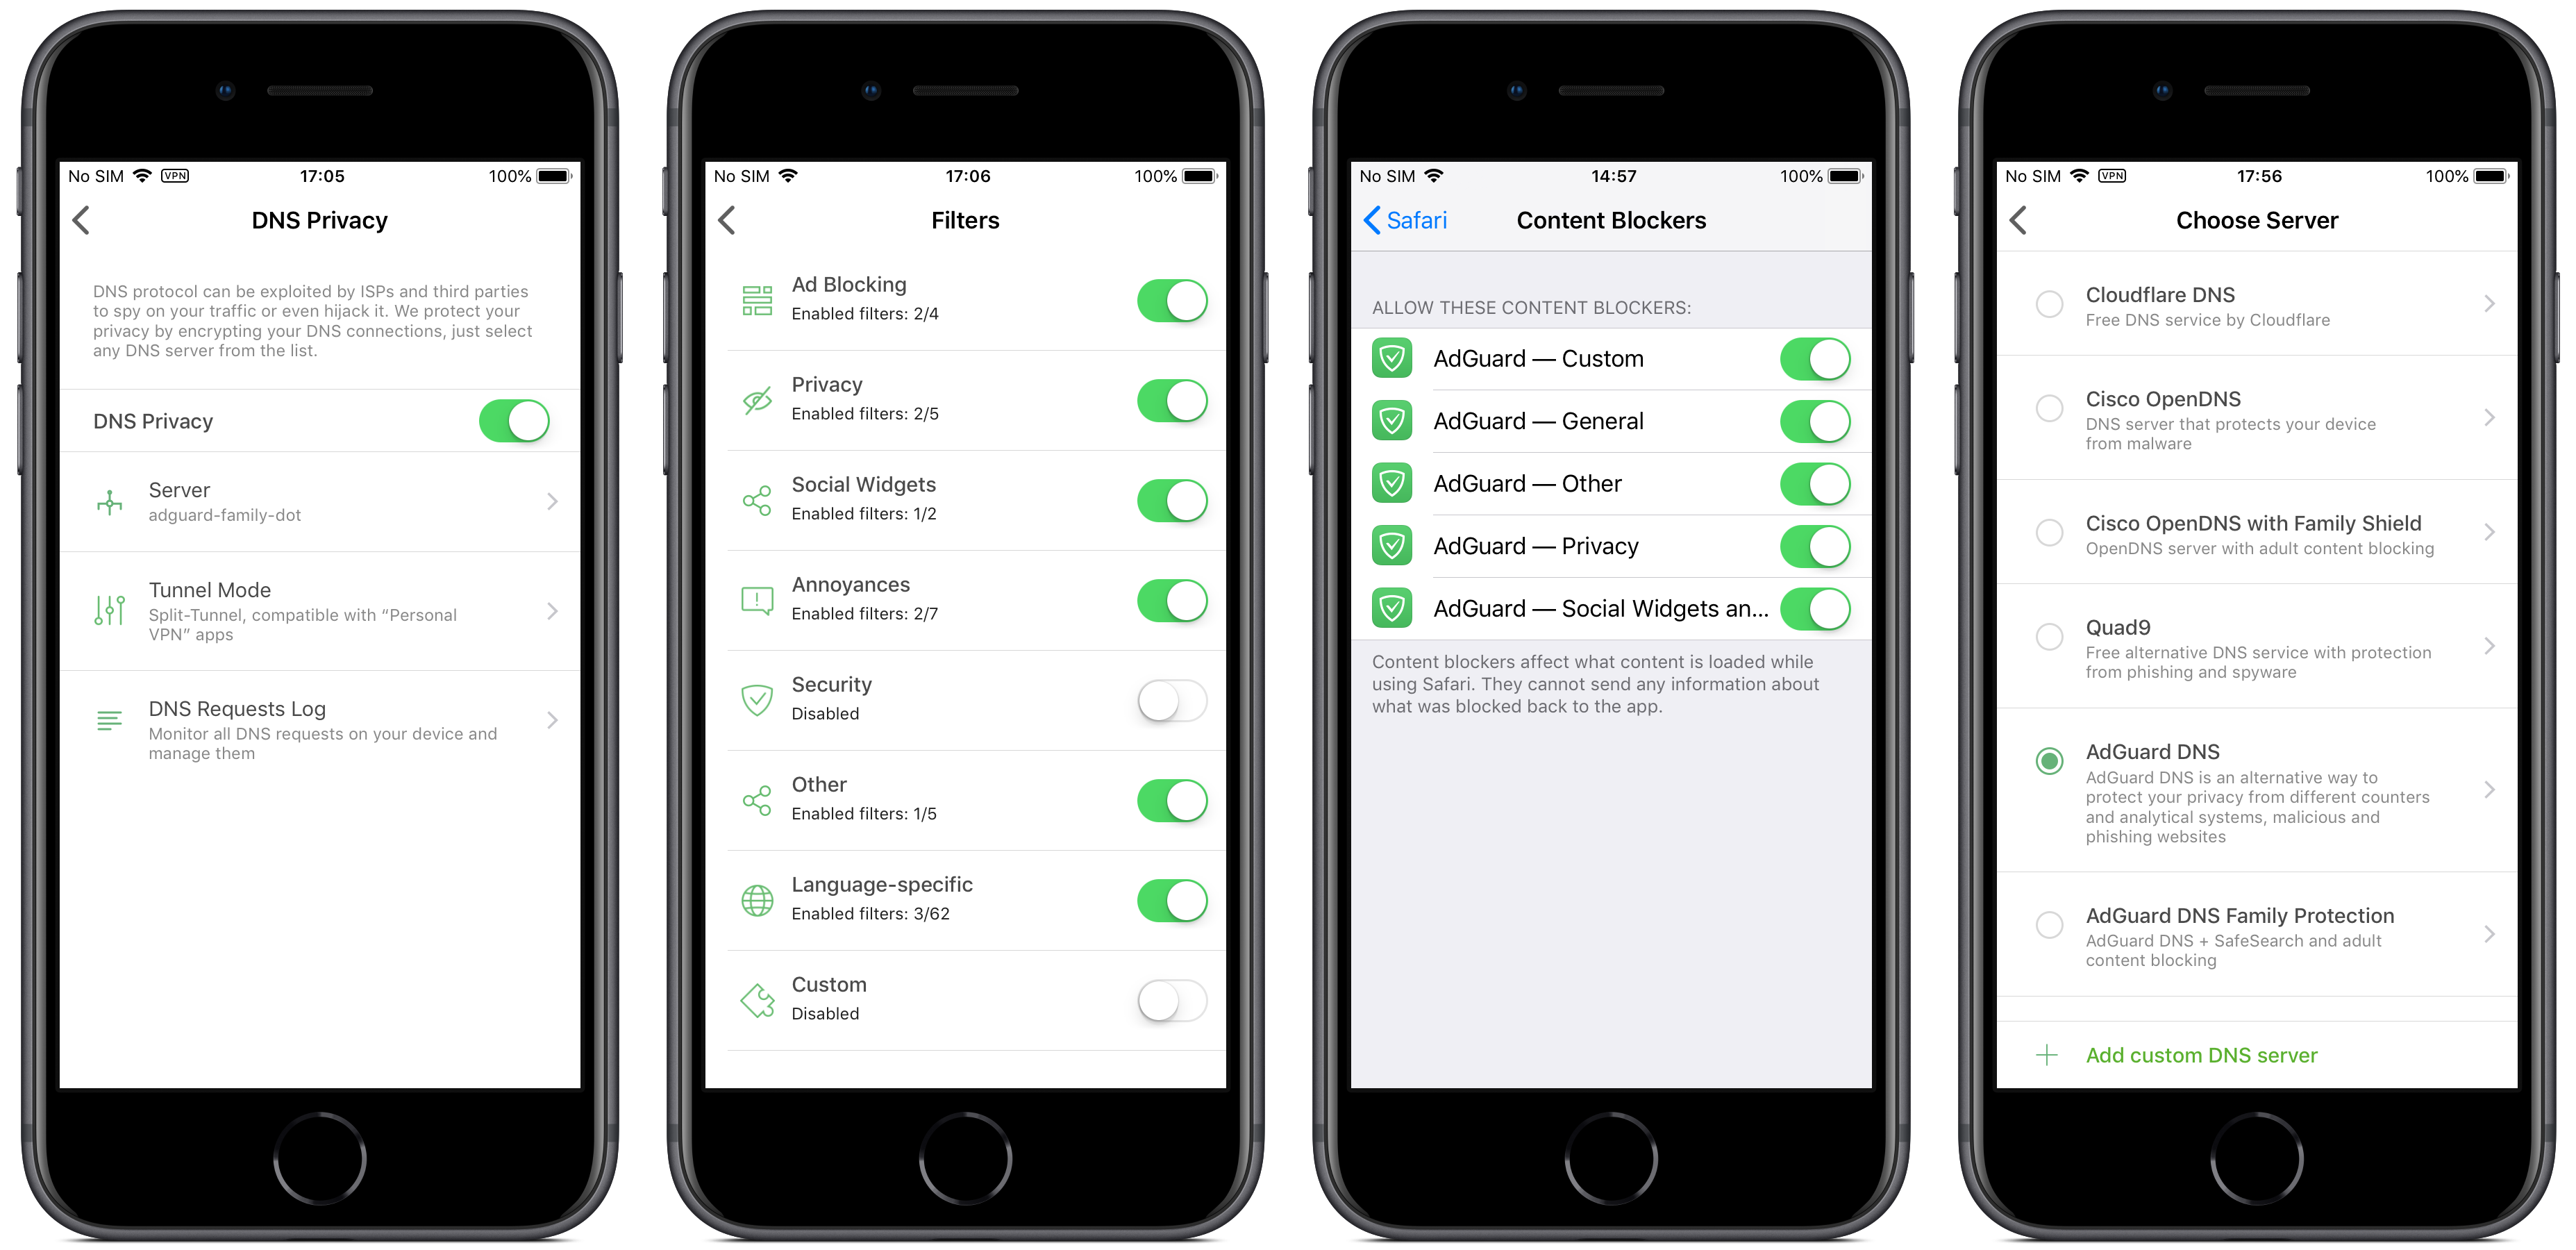 AdGuard 3 Brings DNS Privacy, 250,000 Filter Rules, Premium Features